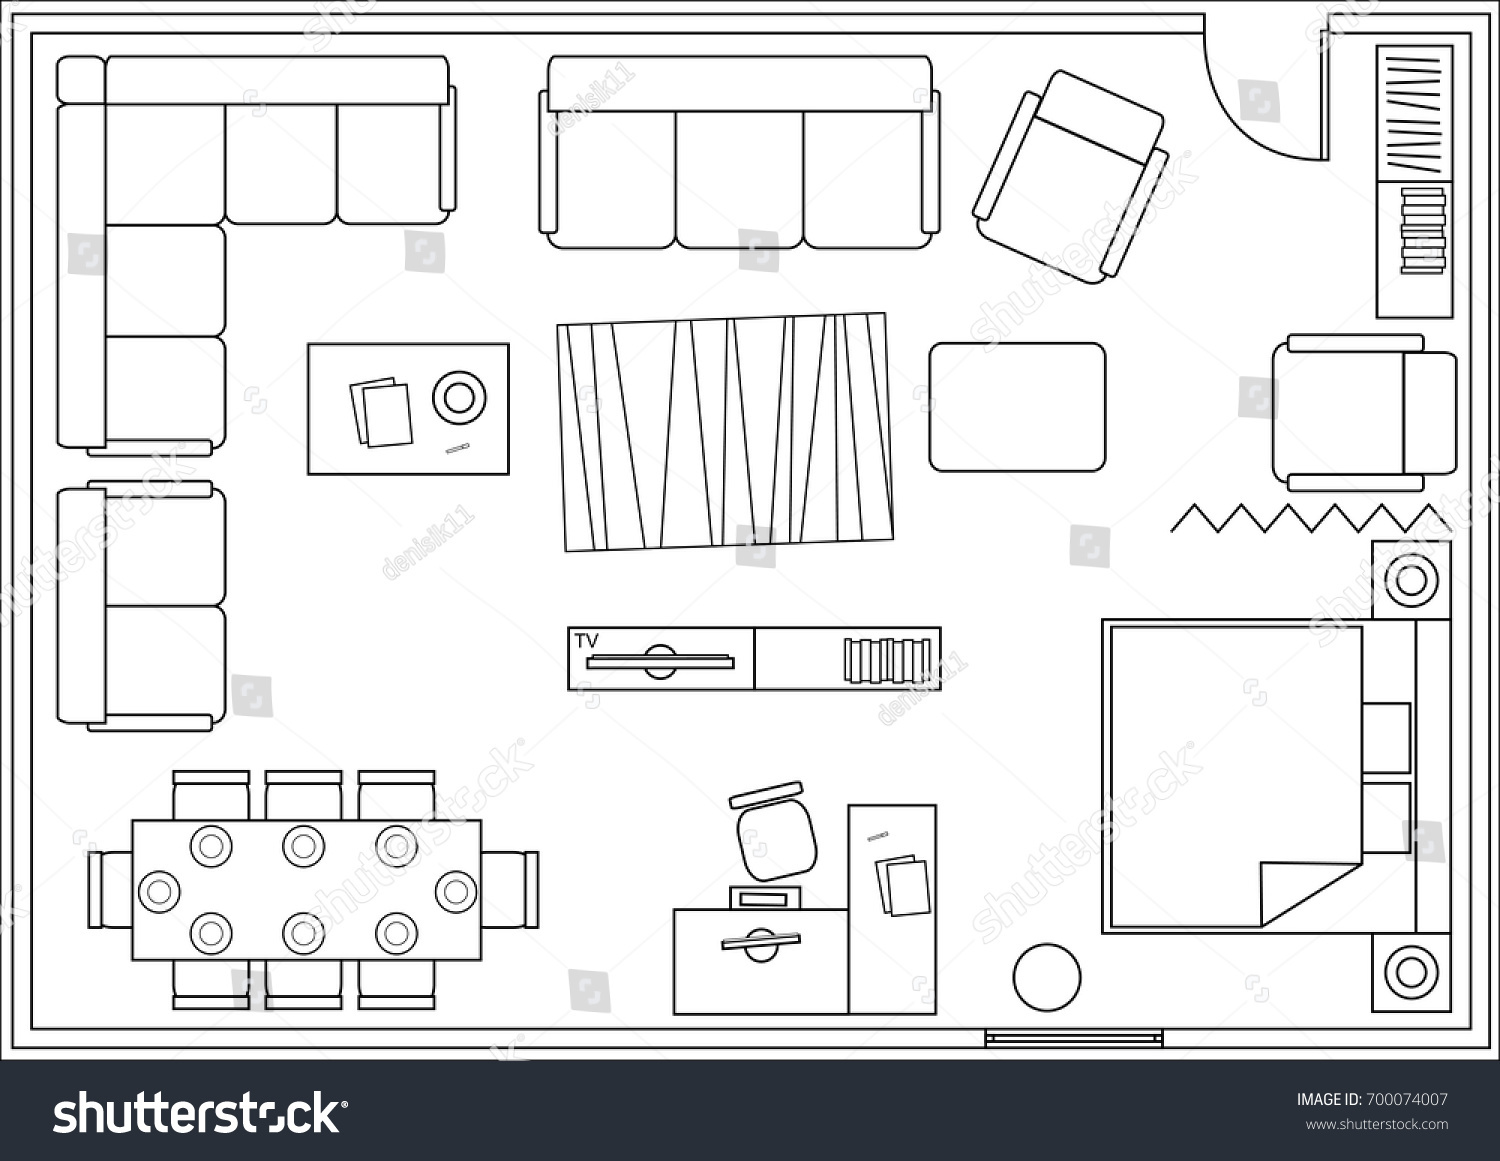 drawing furniture plans. Set Of Icons For Architectural Plans. Drawing Furniture Living Room,  Bedroom, Dining Room Drawing Plans Shutterstock